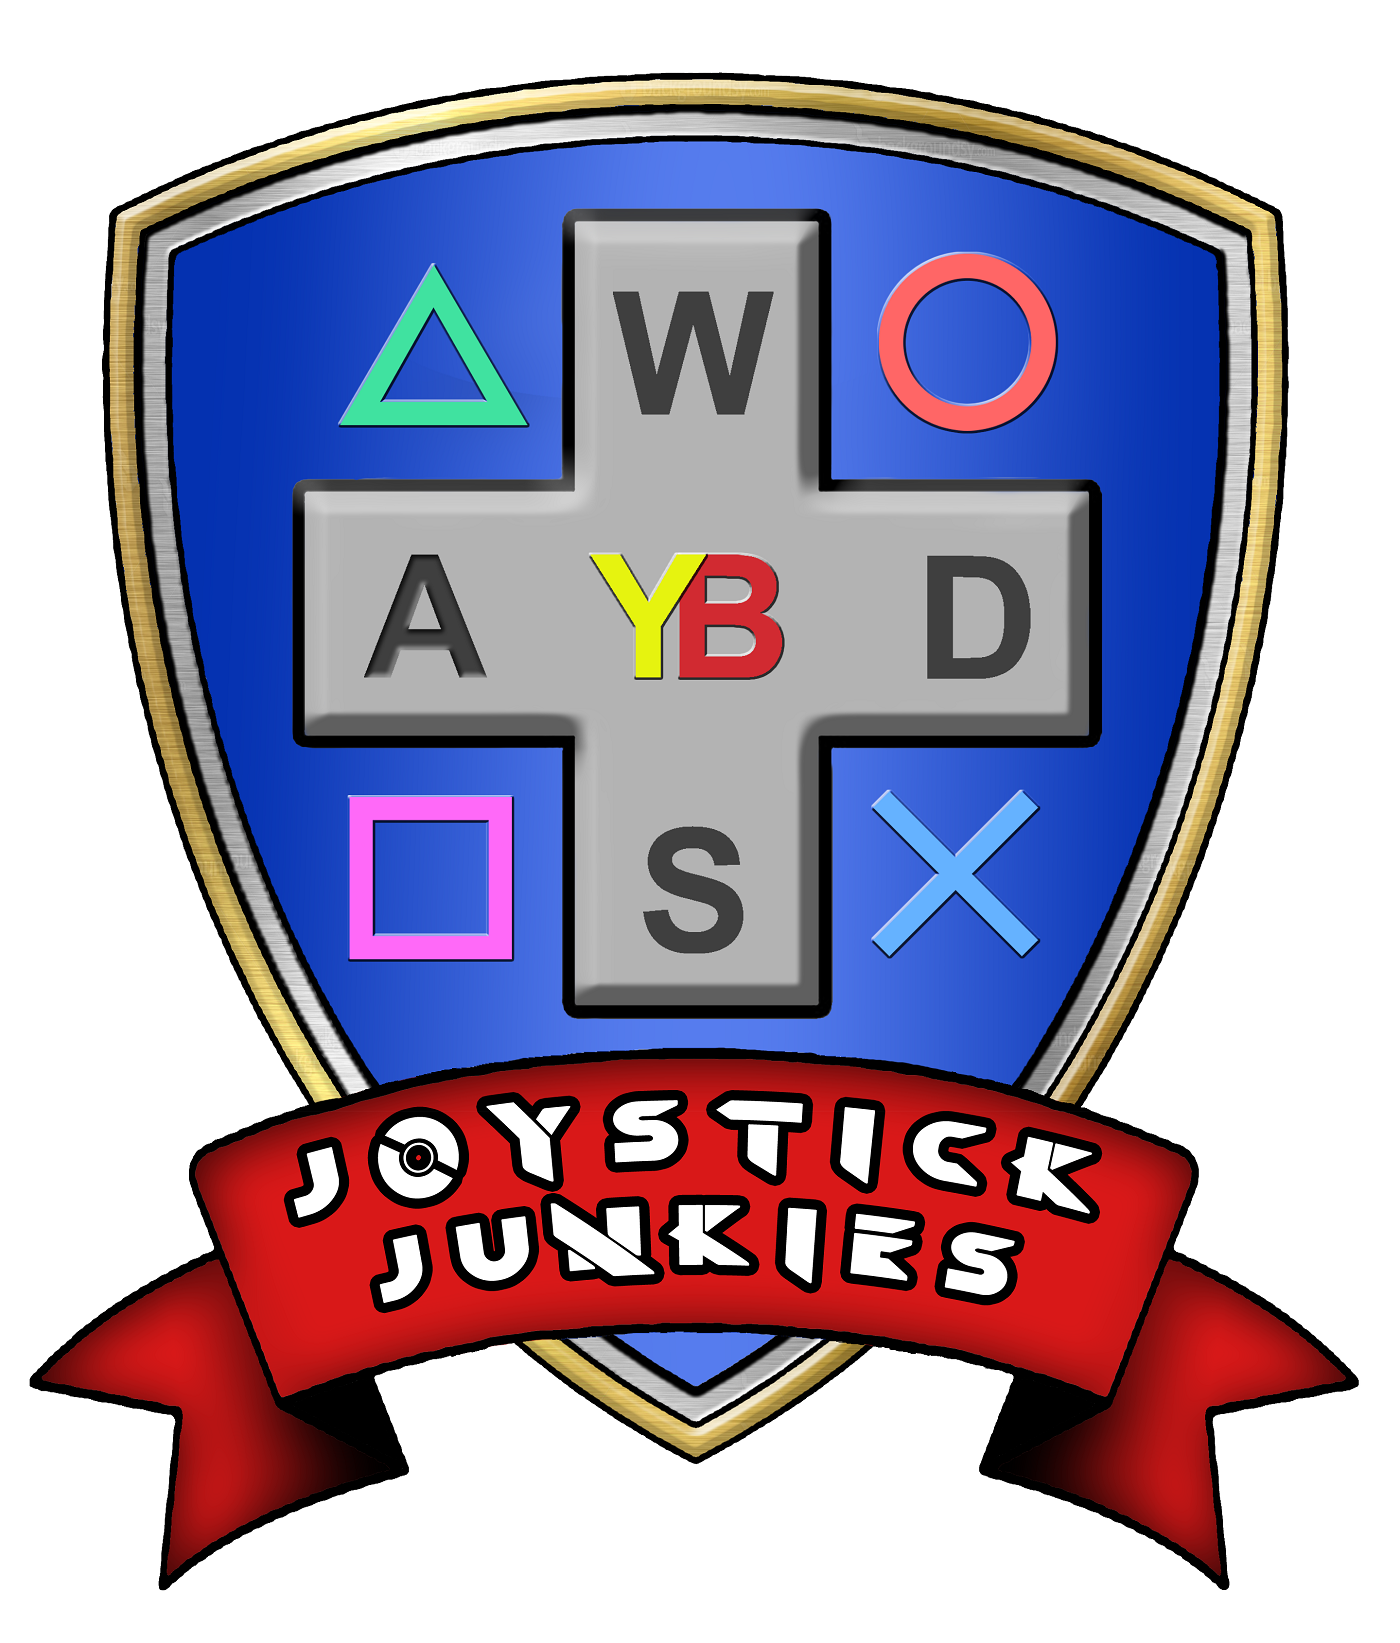 podcast – Joystick Junkies